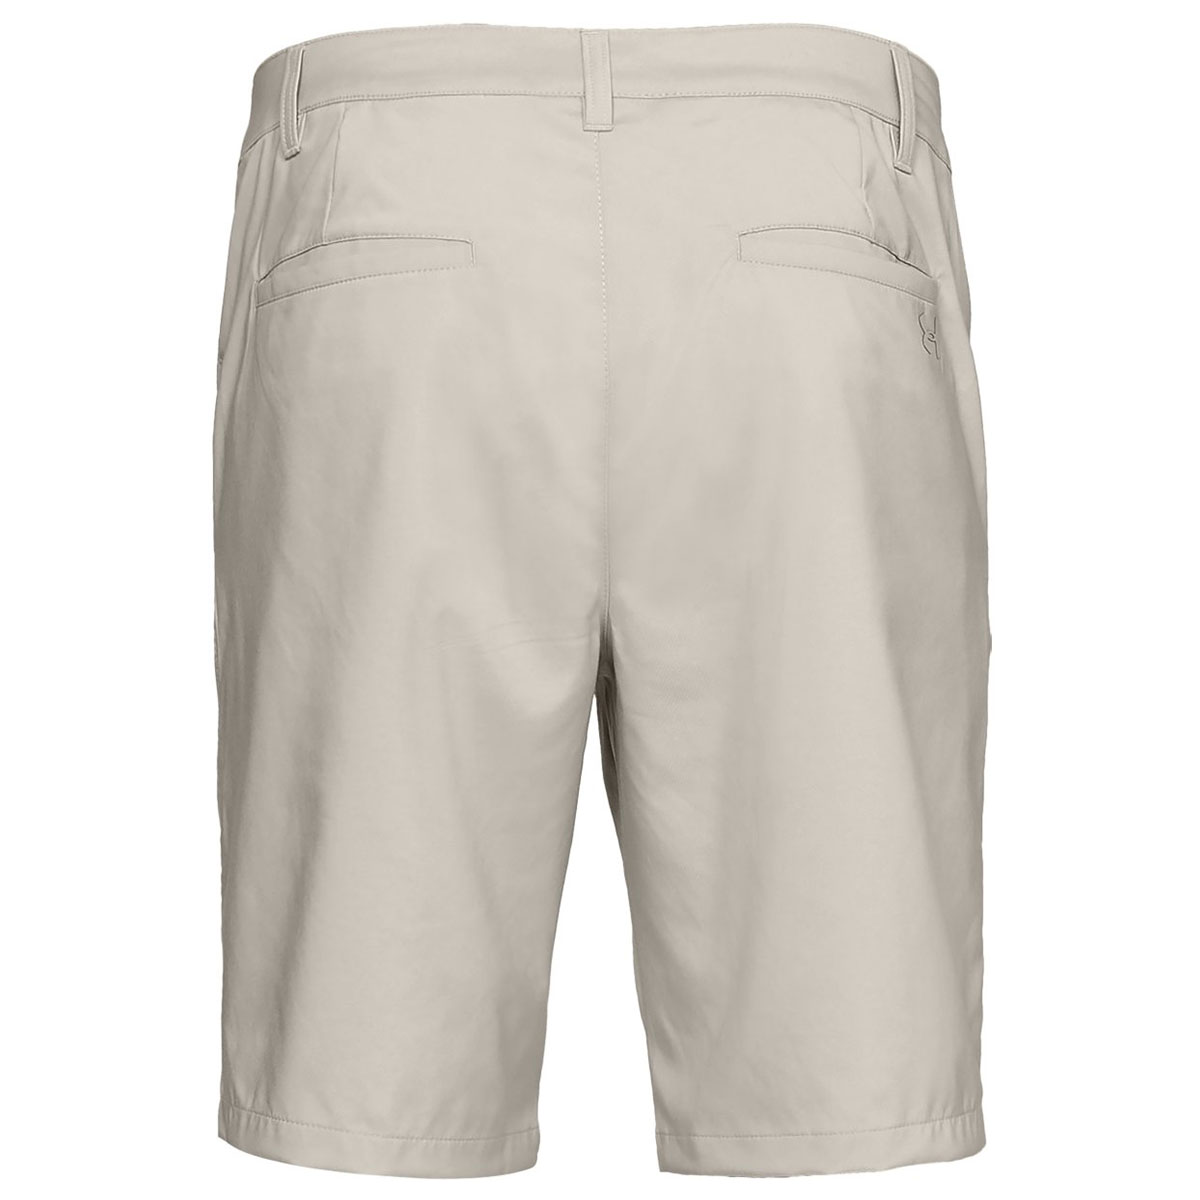 Under-Armour-Mens-2019-EU-Tech-Stretch-Soft-Tapered-Fitted-Golf-Shorts Indexbild 9